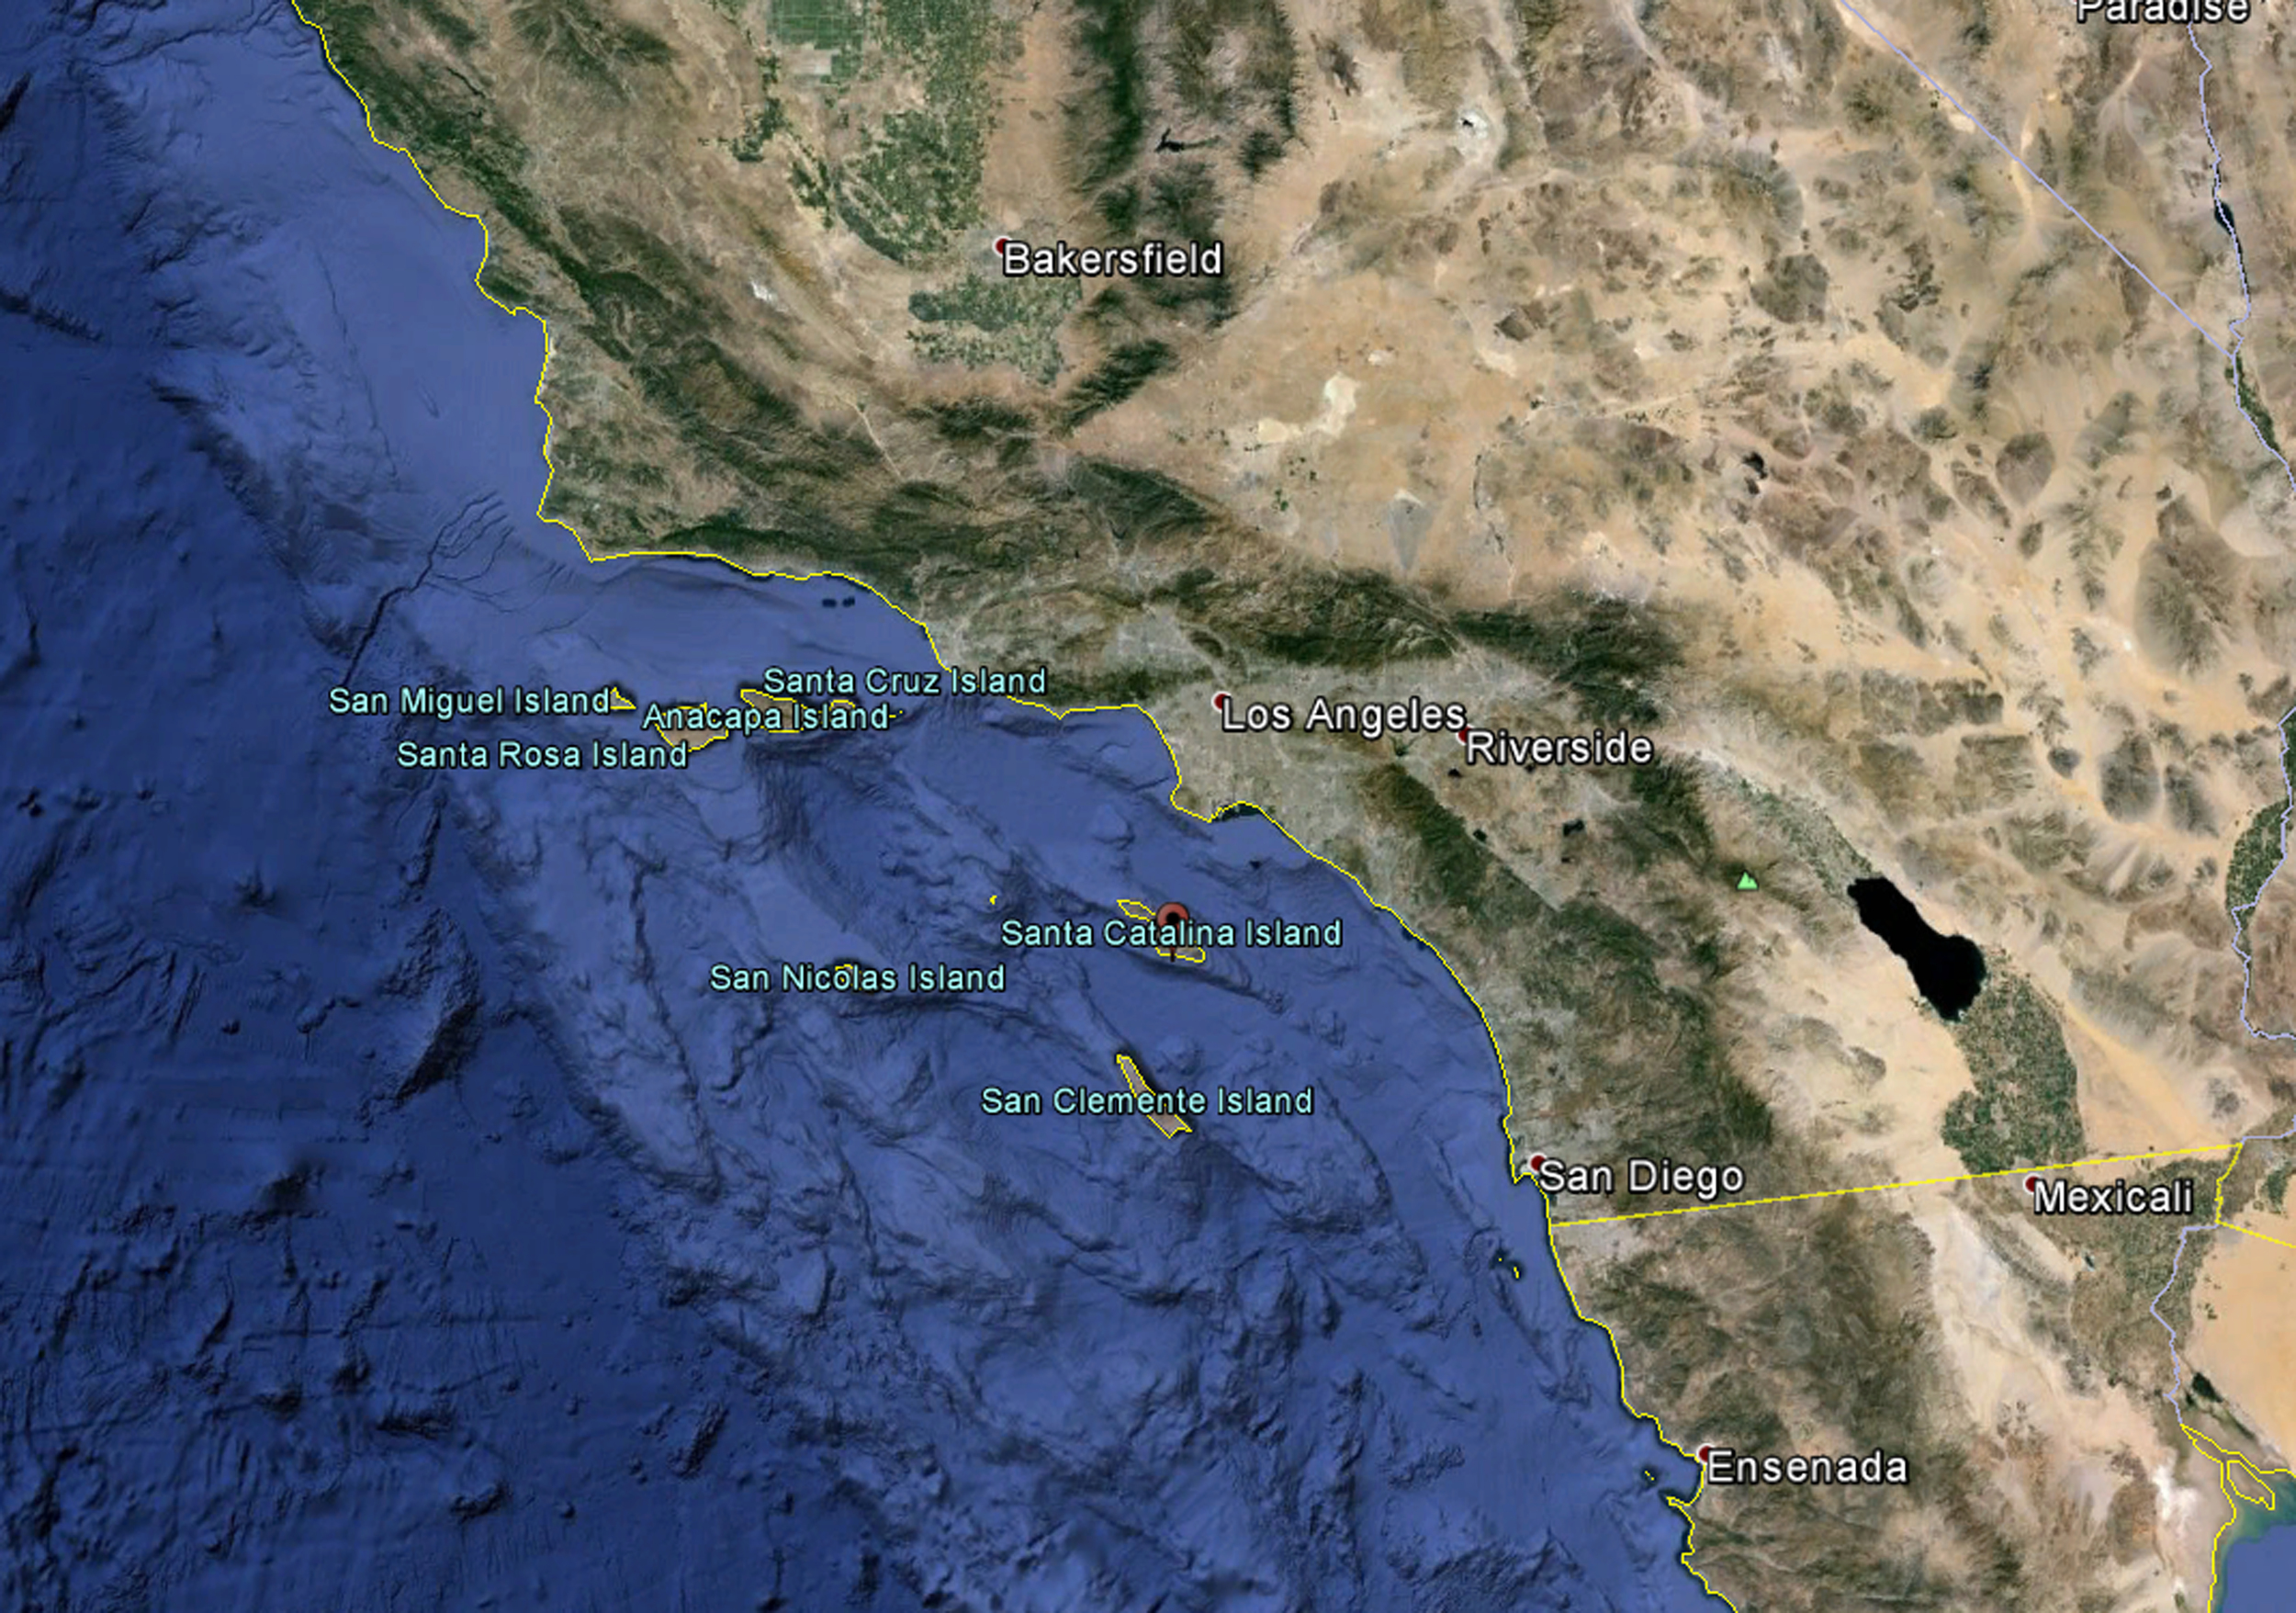 Satellite image showing a portion of the Southern California coast and the Channel Islands